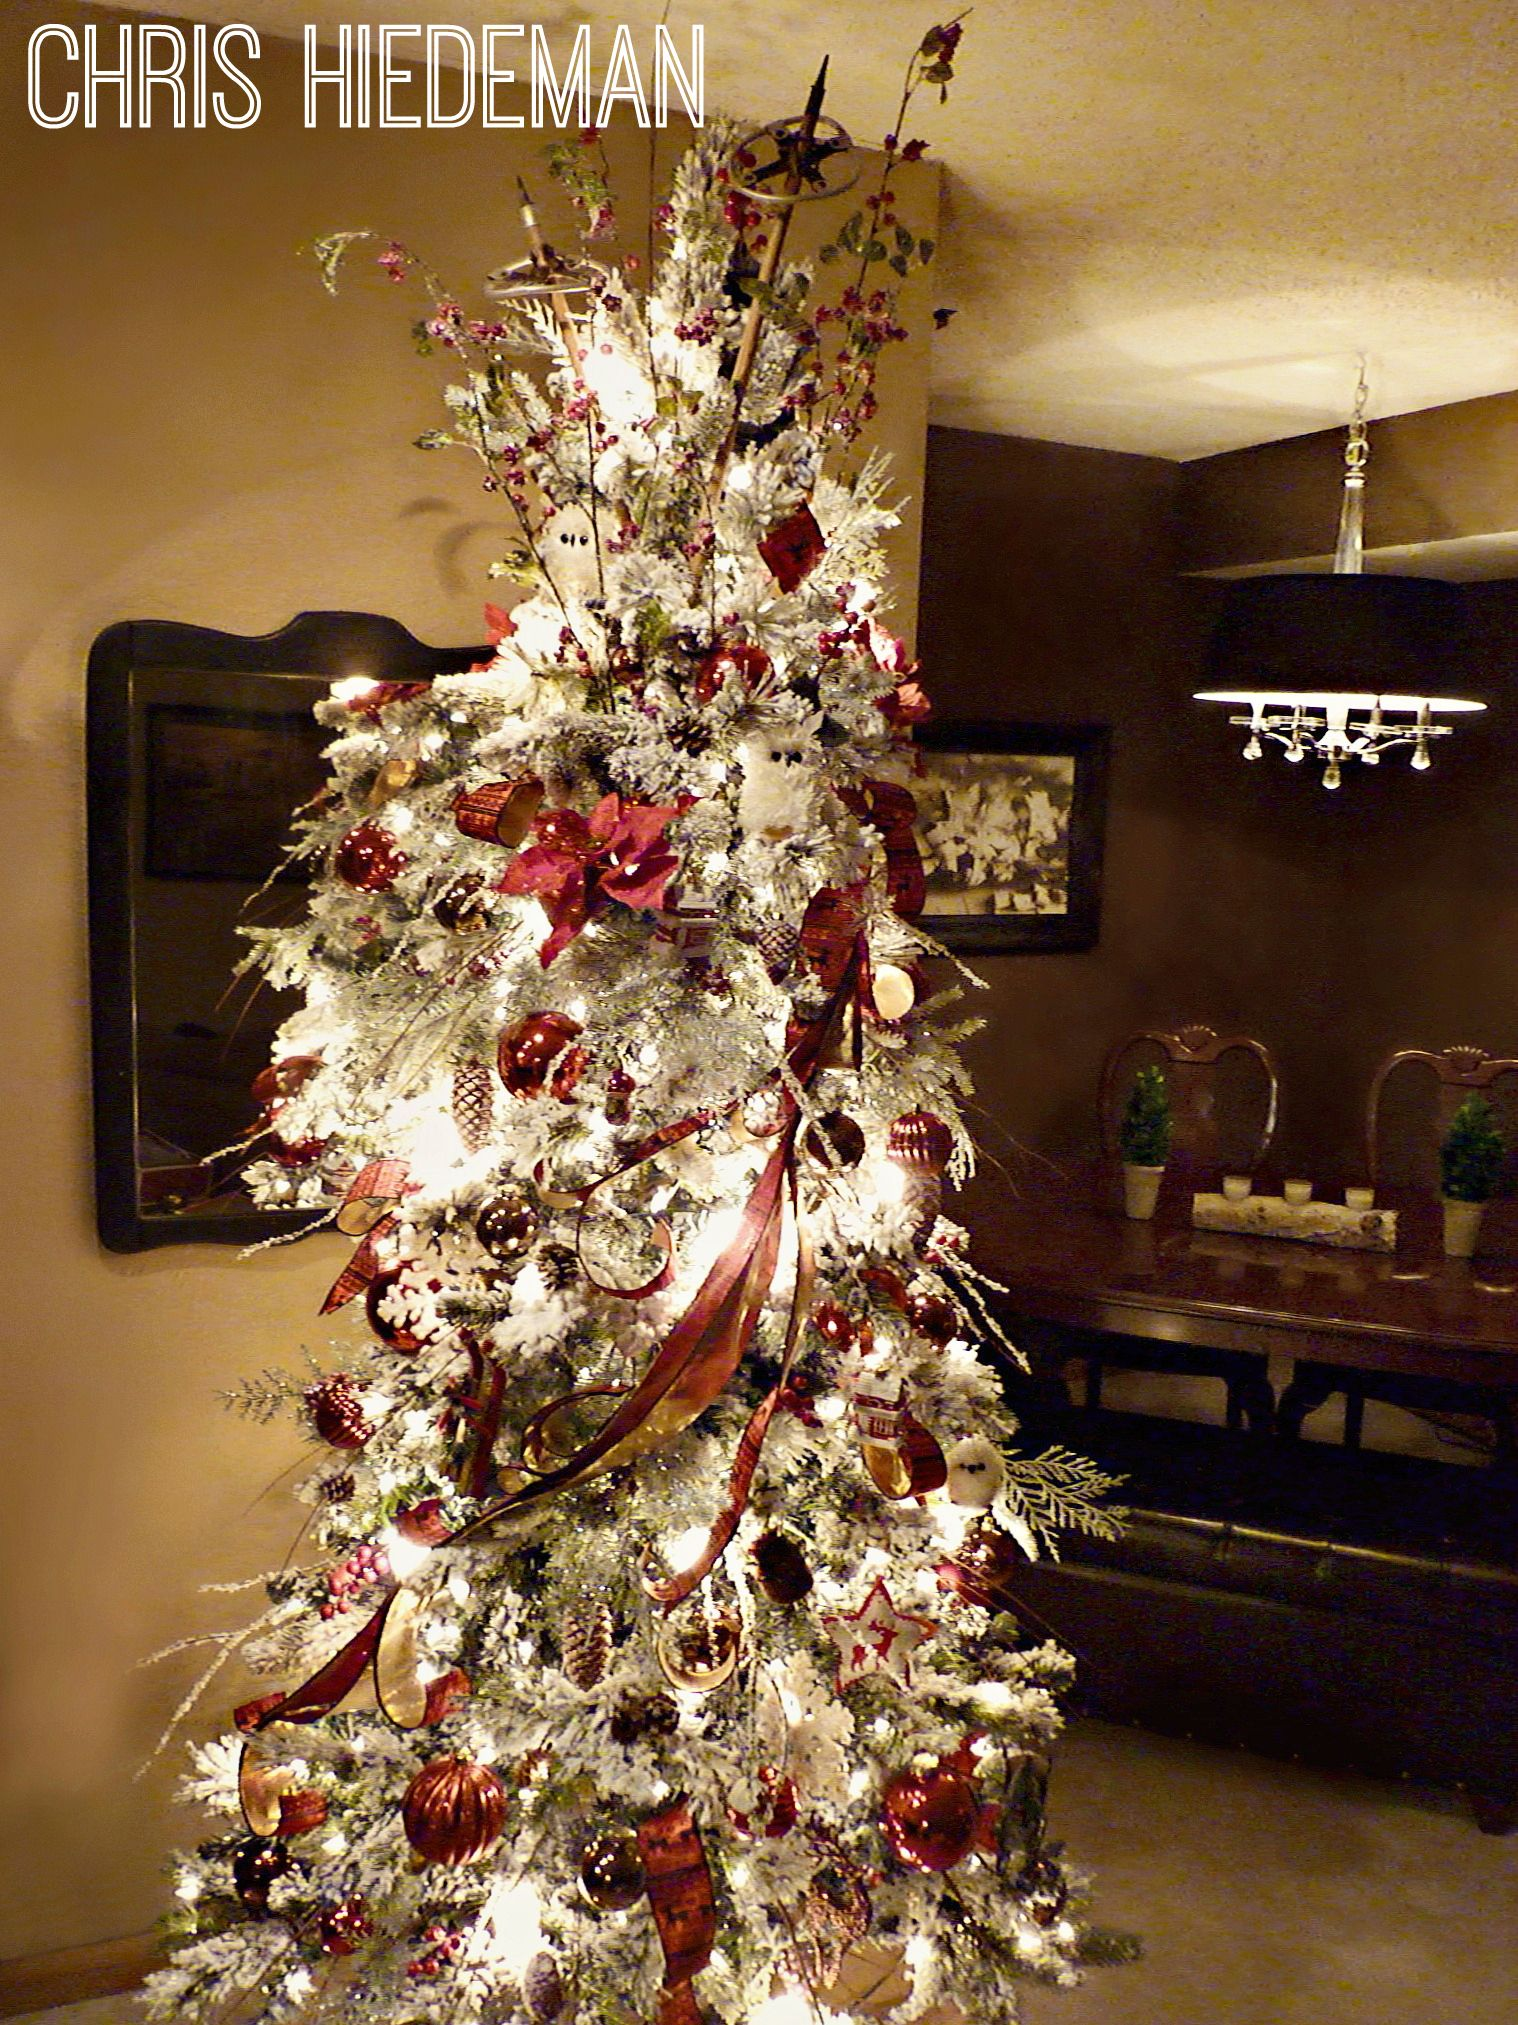 Color schemes for christmas trees - Red And White Color Scheme On Flocked Christmas Tree